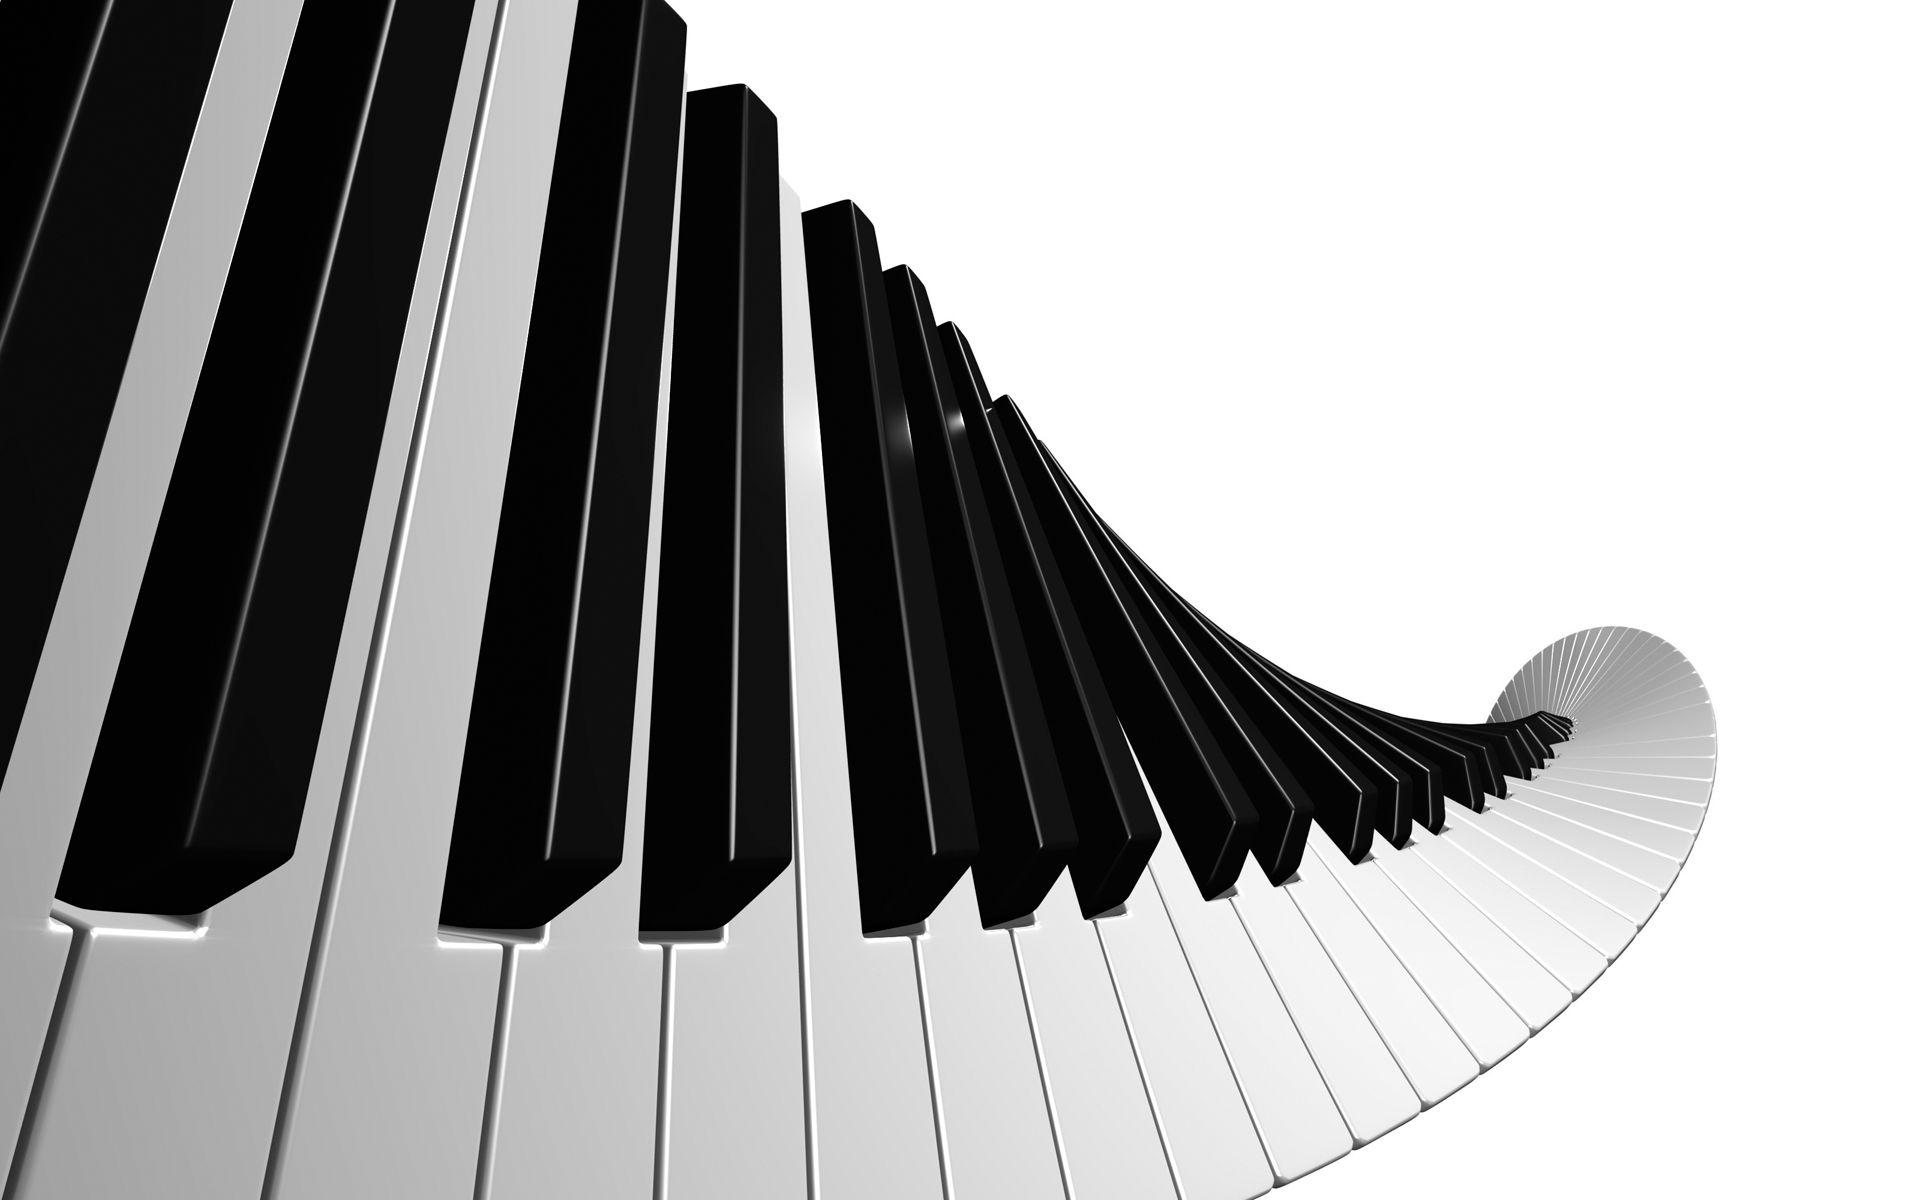 abstract piano art wallpaper - photo #2